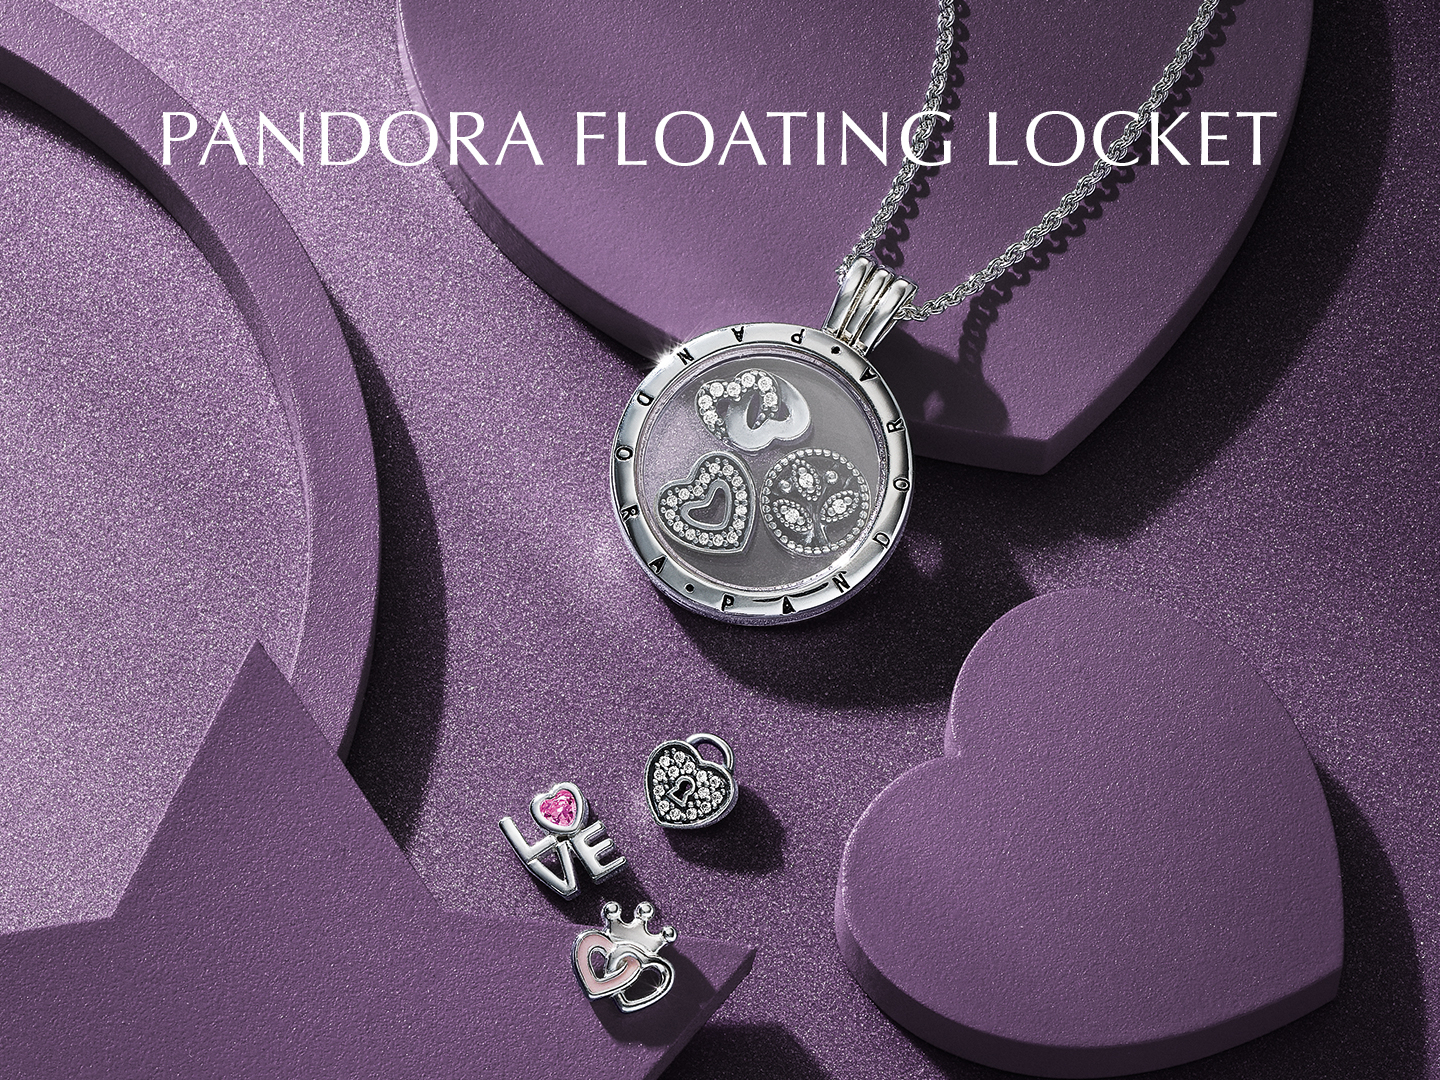 Pandora Floating Locket | Official Online Store Hong Kong | Pando Pertaining To Most Up To Date Pandora Lockets Logo Heart Dangle Charm Necklaces (Gallery 17 of 25)